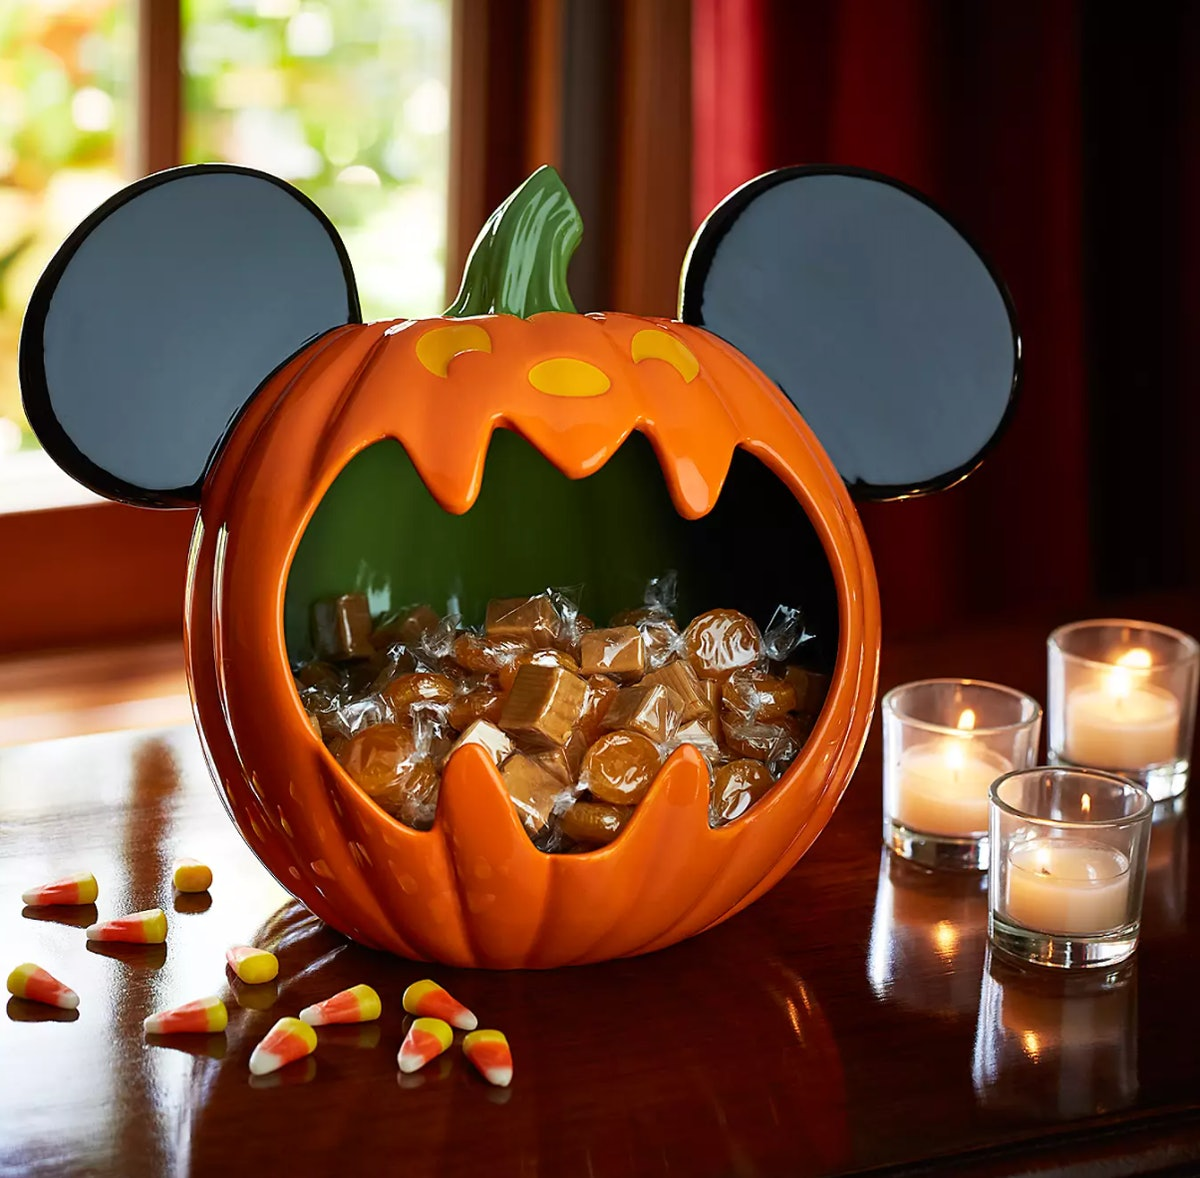 Mickey Mouse Halloween Candy Bowl